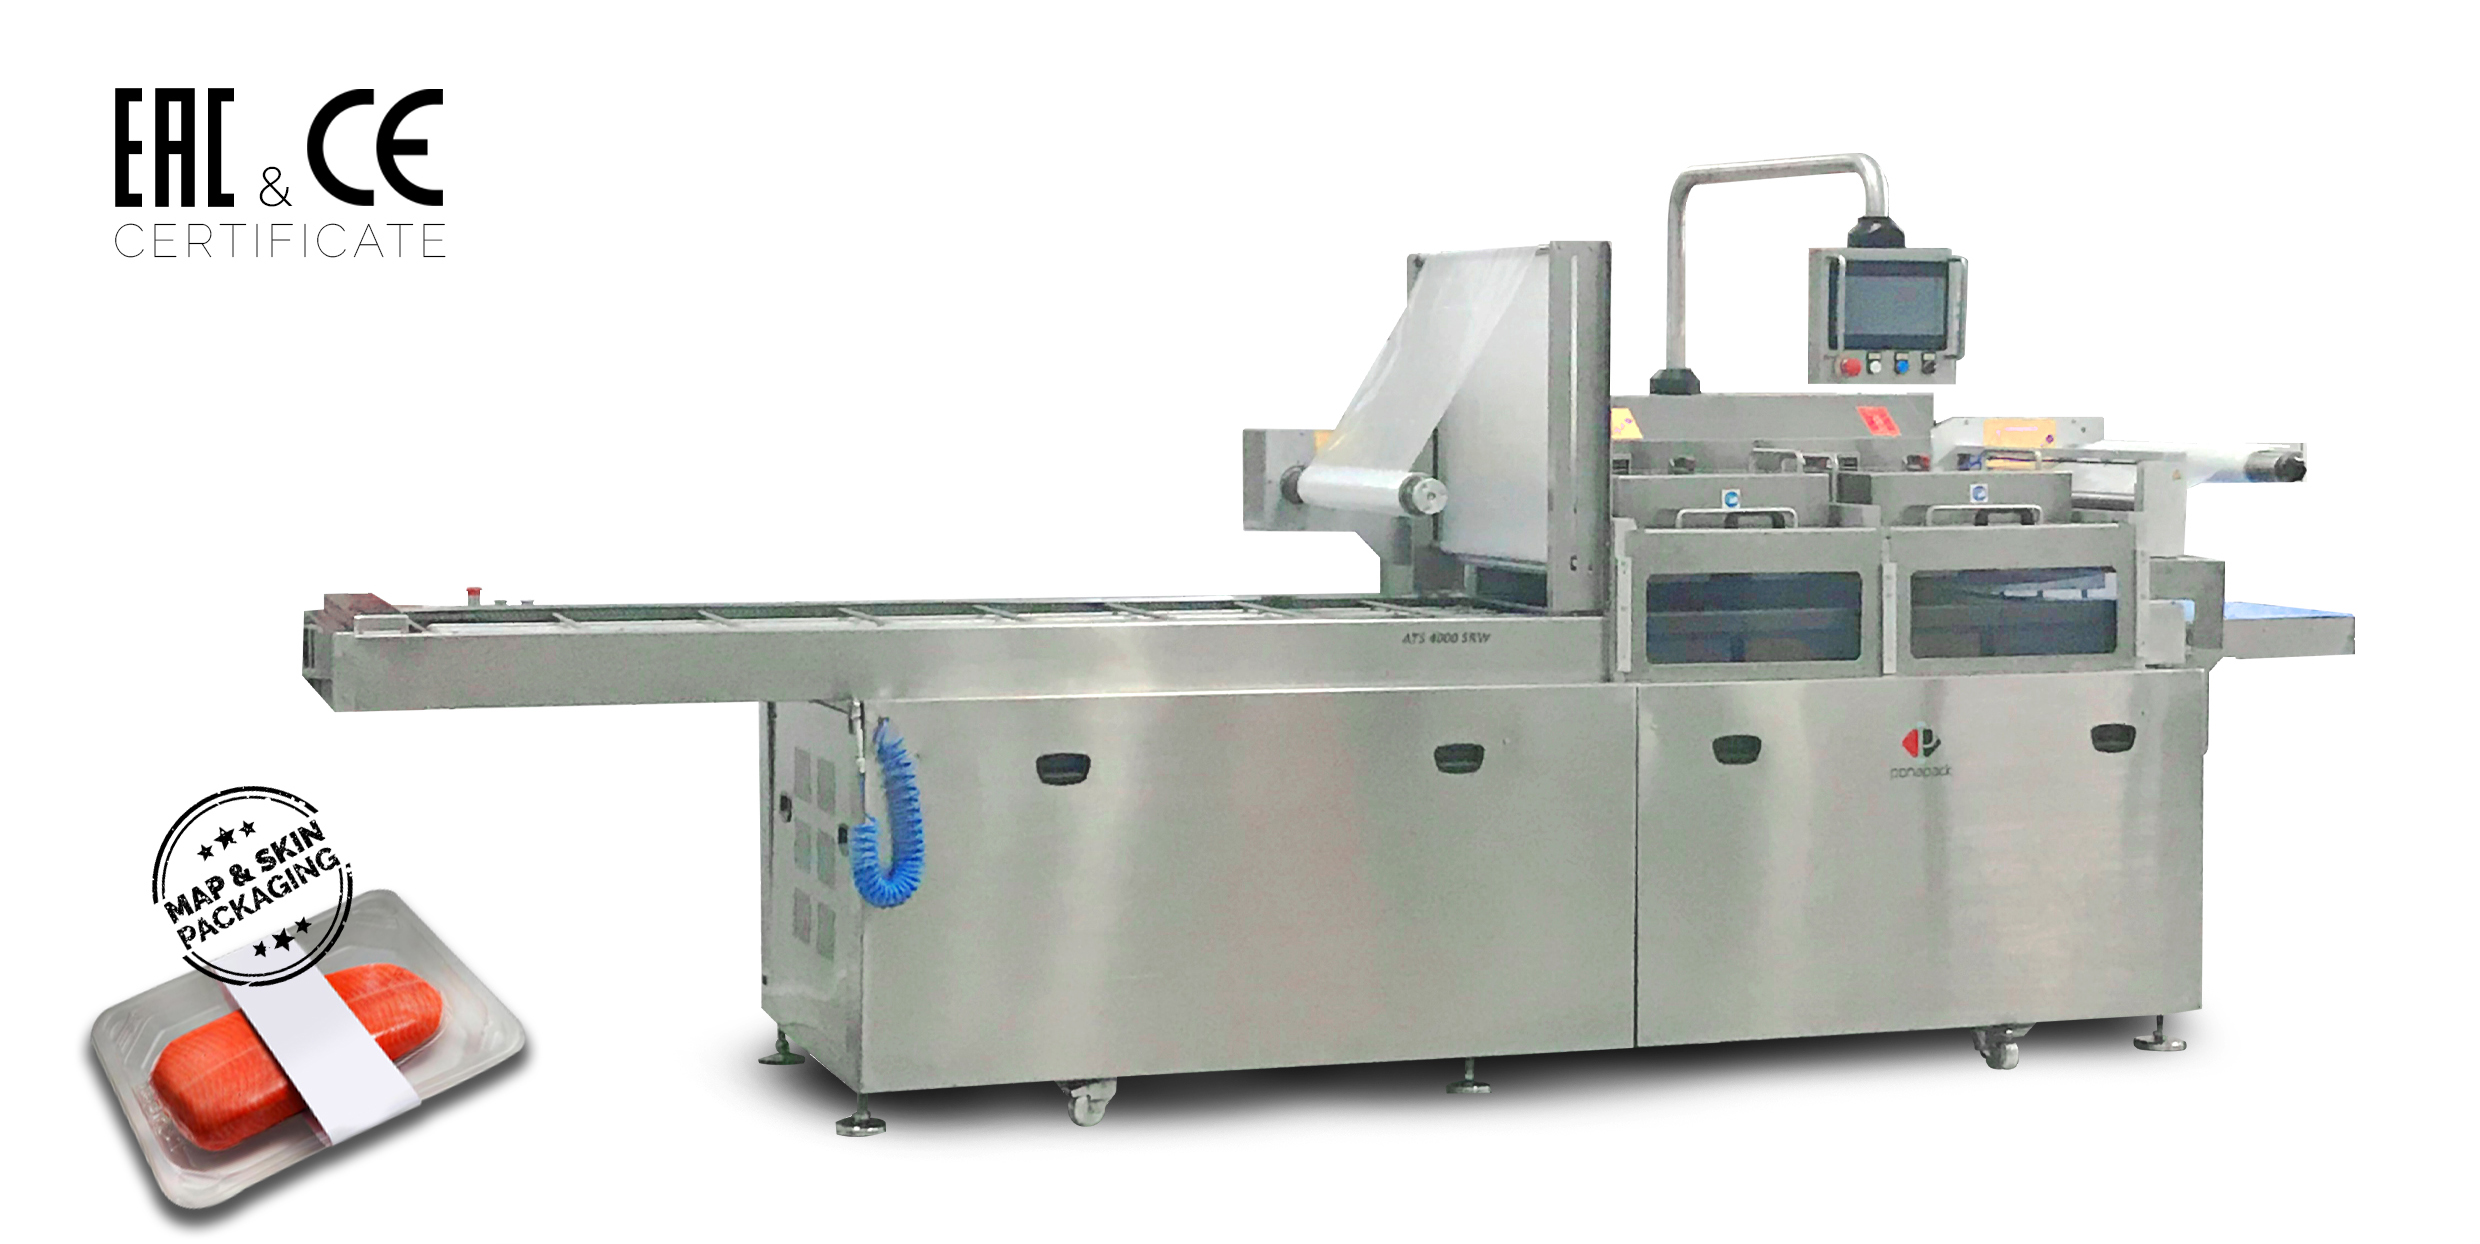 ATS 4000 SRW Automatic Tray Sealers for